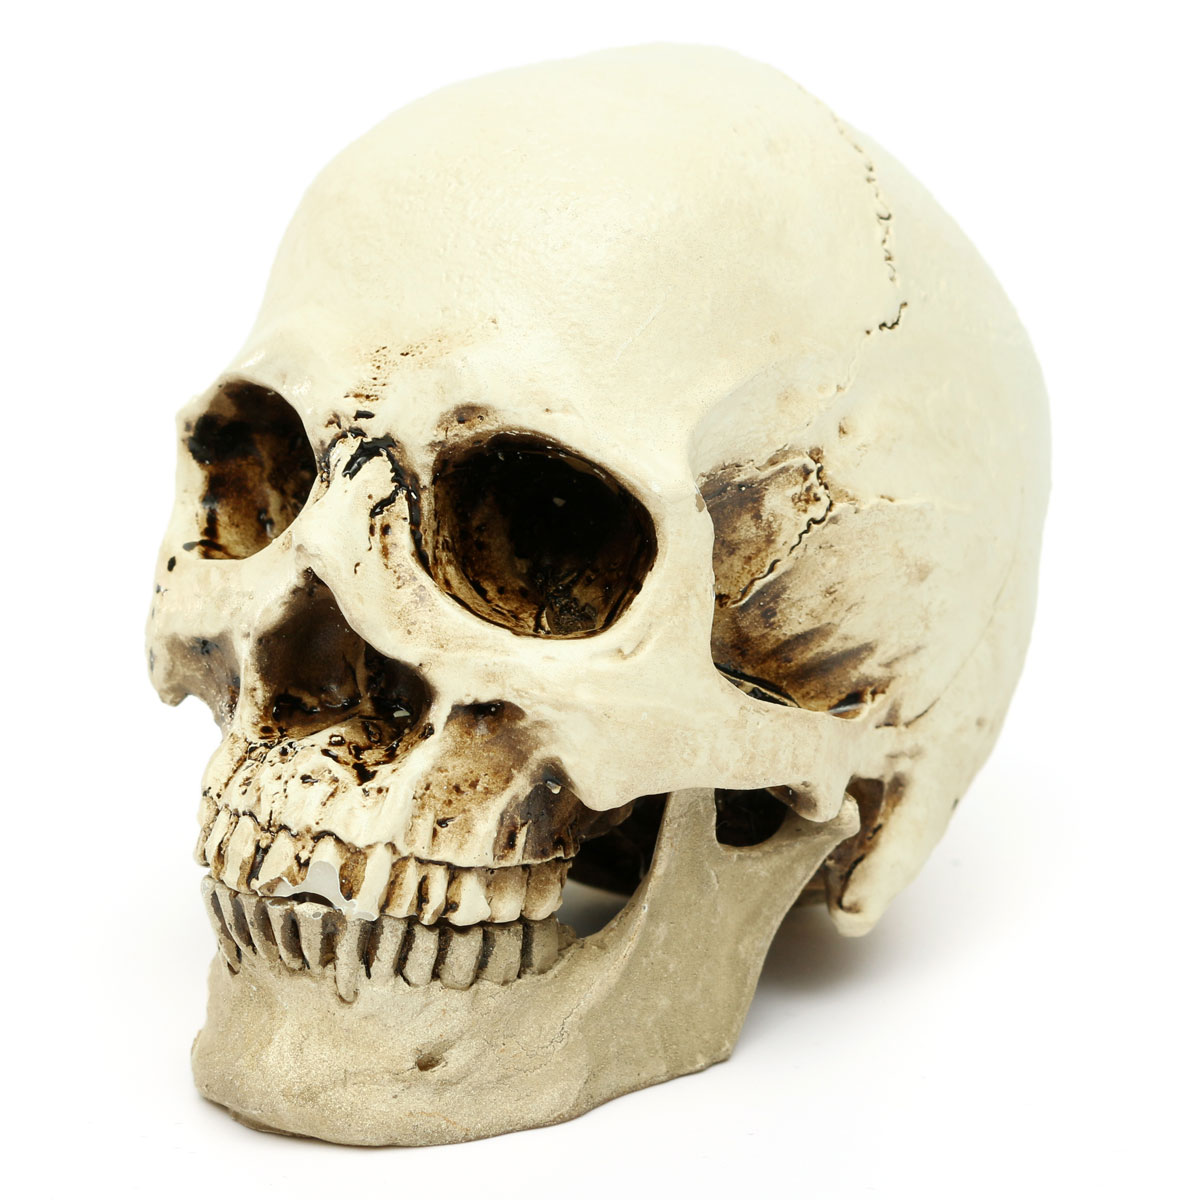 Aliexpress.com : Buy New Model Gifts Resin White Head Skull Halloween Props  Small Human Skull Replica Haunted House Room Escape Horrible Supplies from  ...